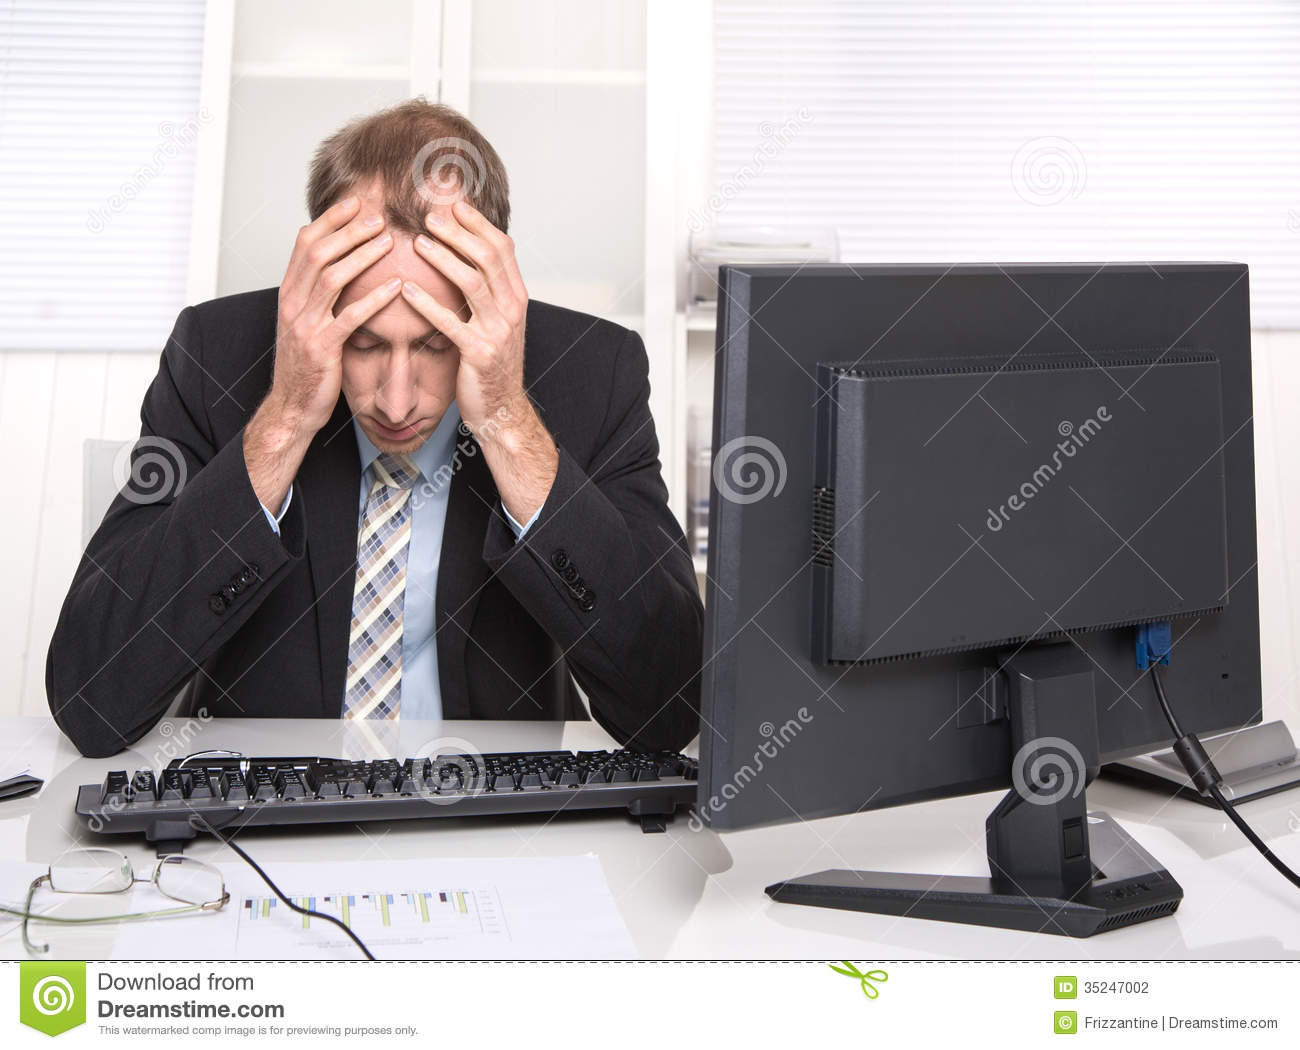 Overworked Businessman Frustrated And Stressed In His Office Stock Photo  Image 35247002